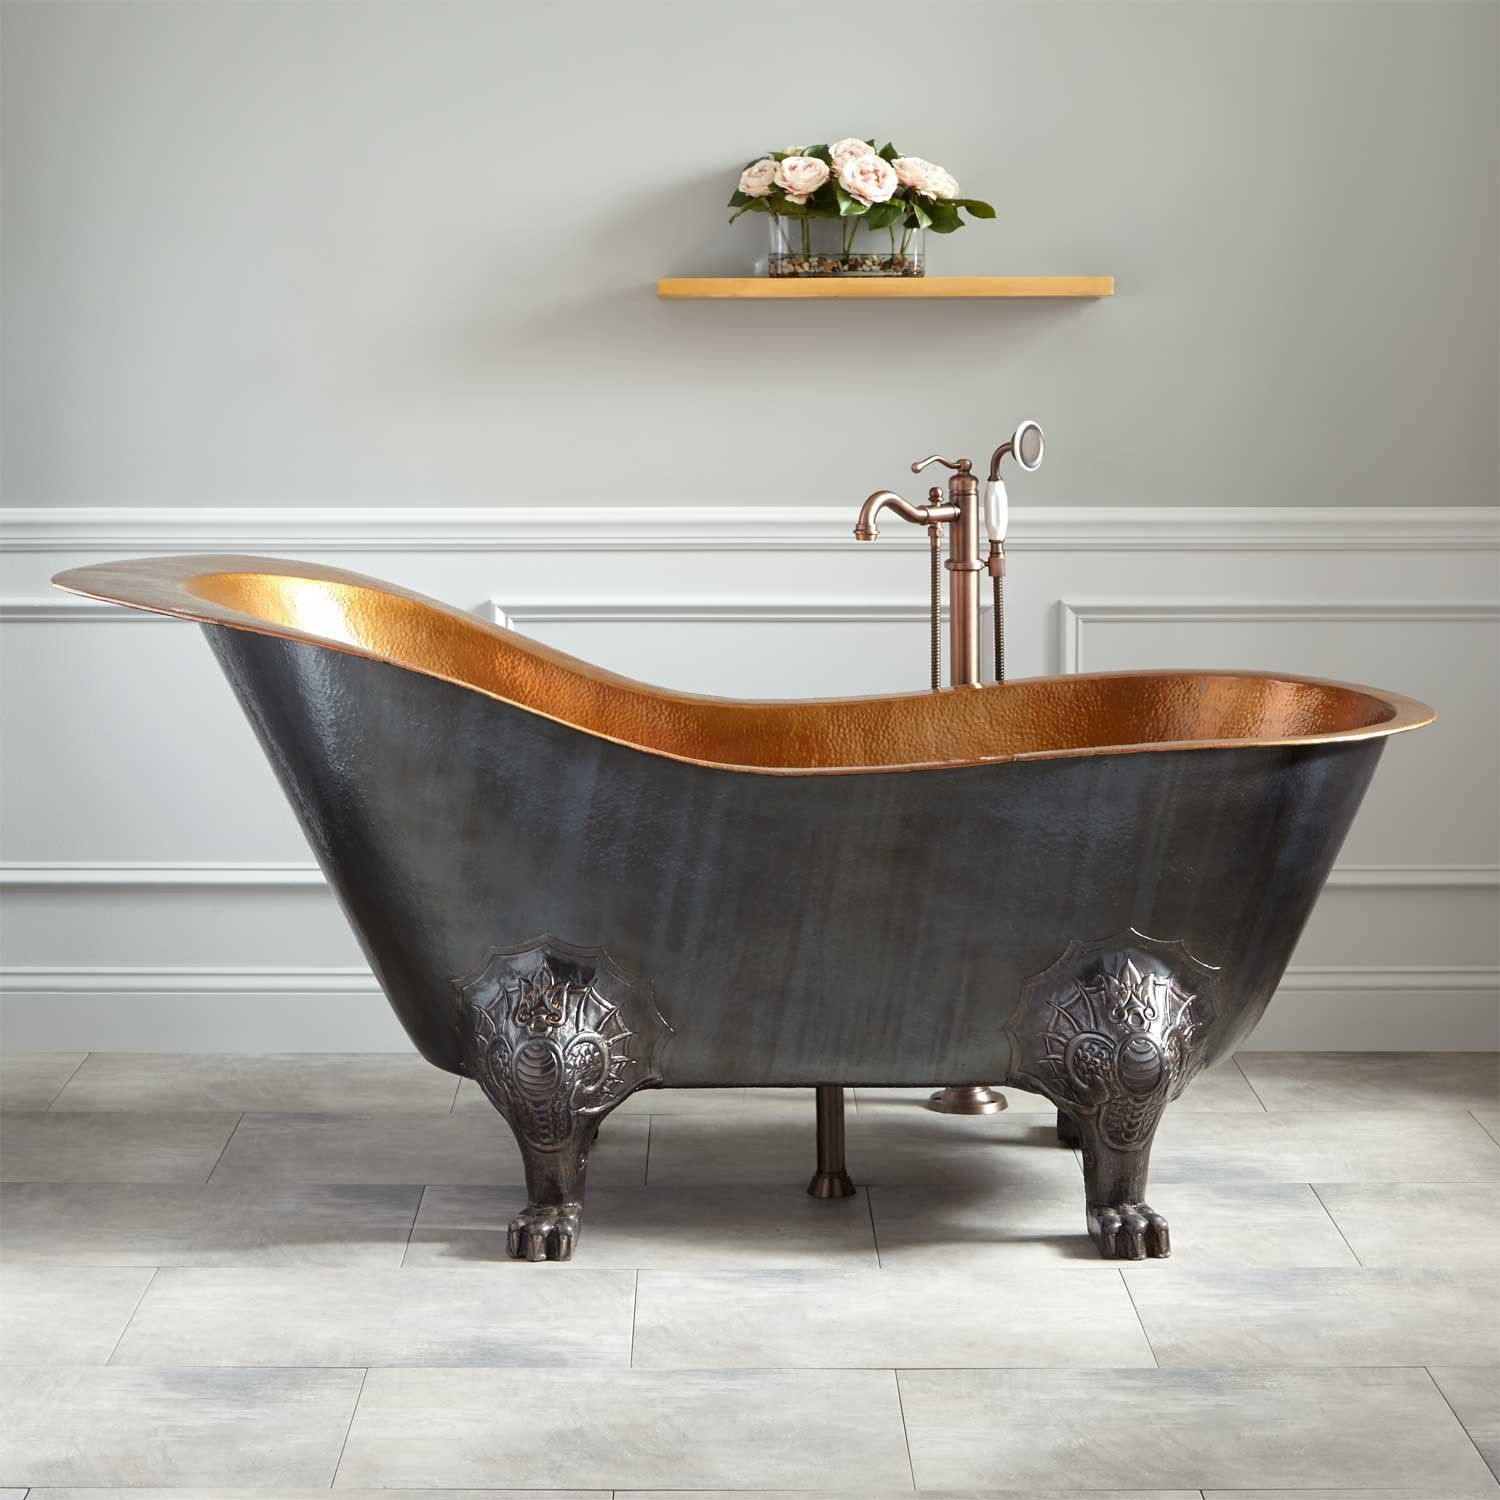 Cleaning Guidelines For Your Bathroom Clawfoot Tub With Images